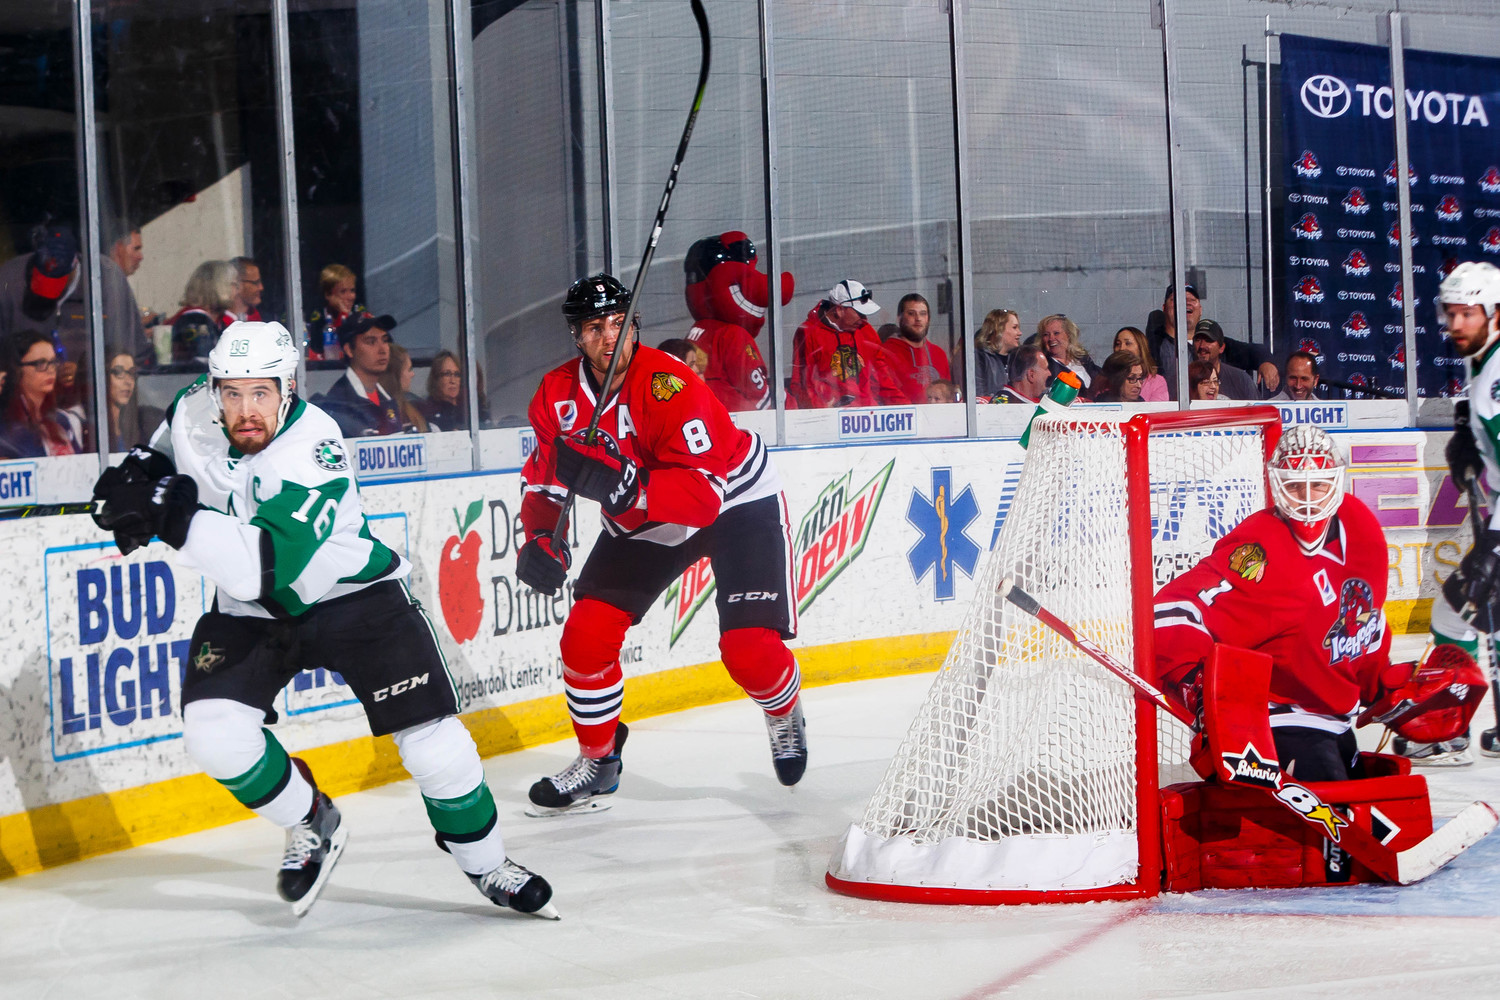 Curtis McKenzie scored in overtime Tuesday night in Rockford to give the Stars a 6-5 win over the IceHogs in Game 3 of the Western Conference Finals. Texas leads the best-of-seven series 3-0 and has won seven straight playoff games.